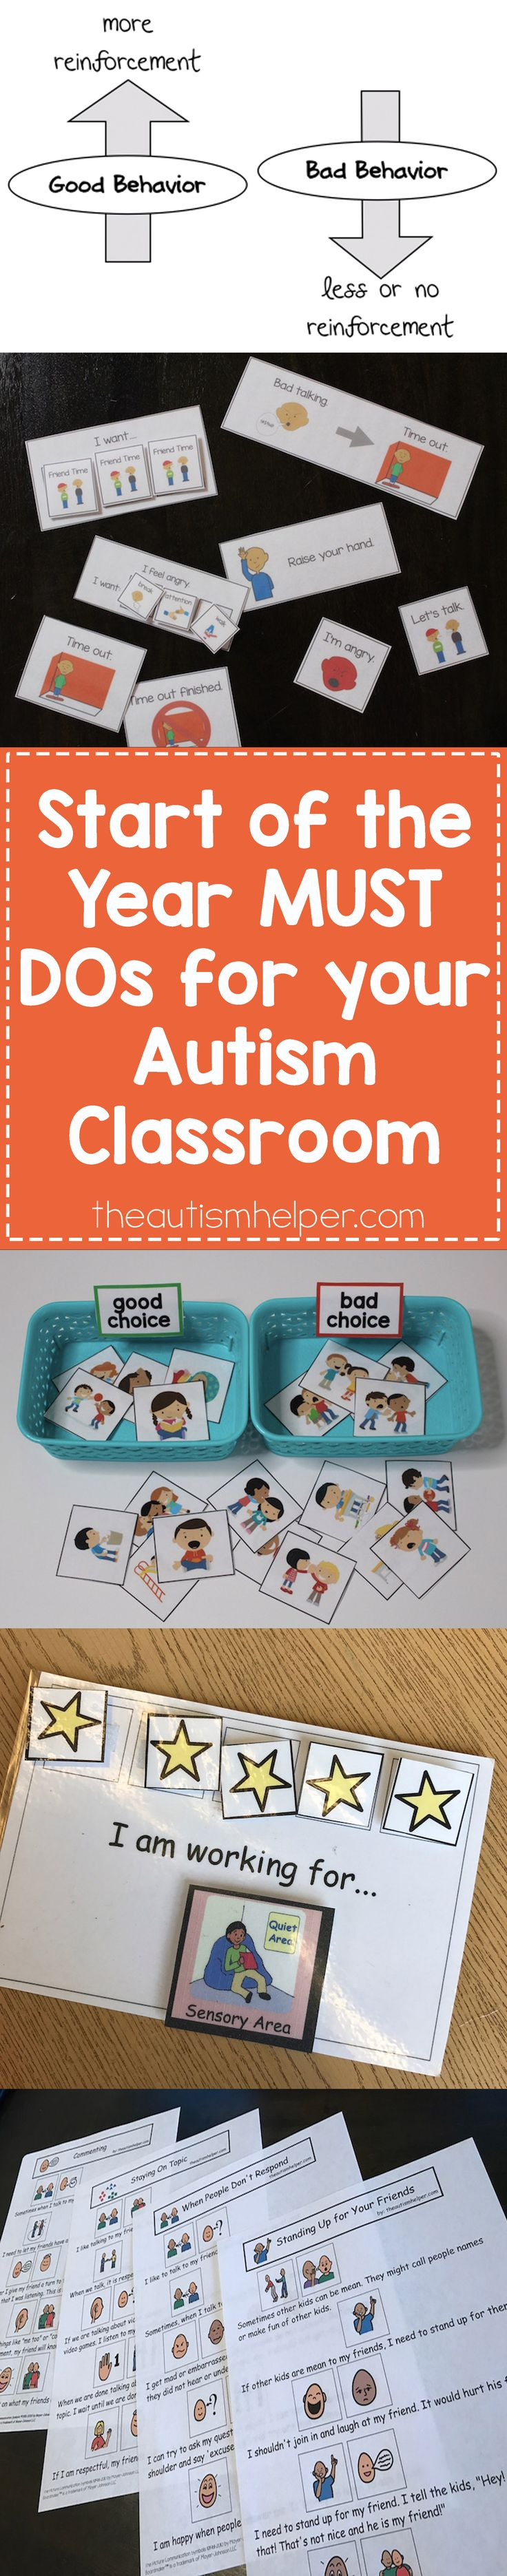 192 best Visuals for an Autism Classroom images on Pinterest